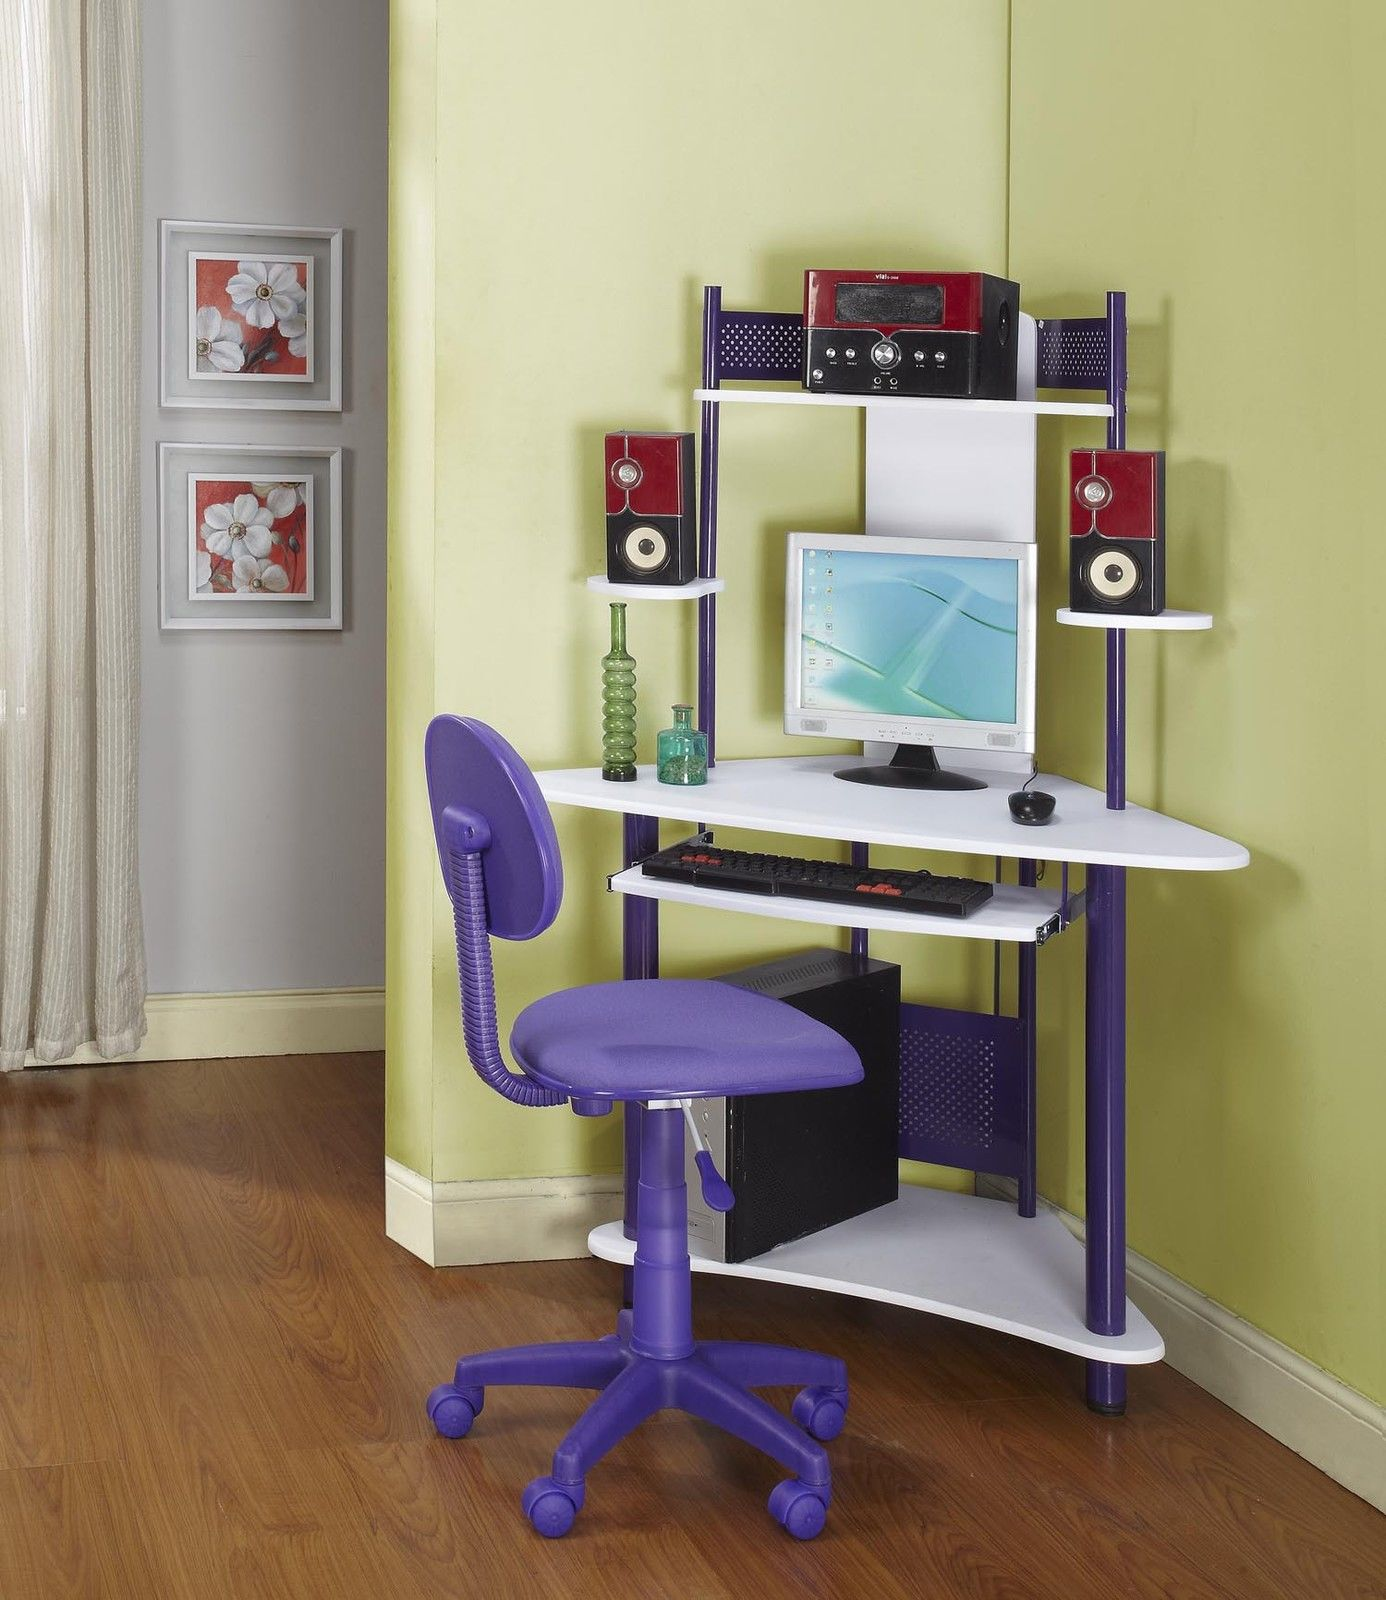 small corner desk ikea favorite private for workspace mini and colorful with under sliding panel keyboard cpu monitor set sweet purple chair wheels wood finish flooring accent